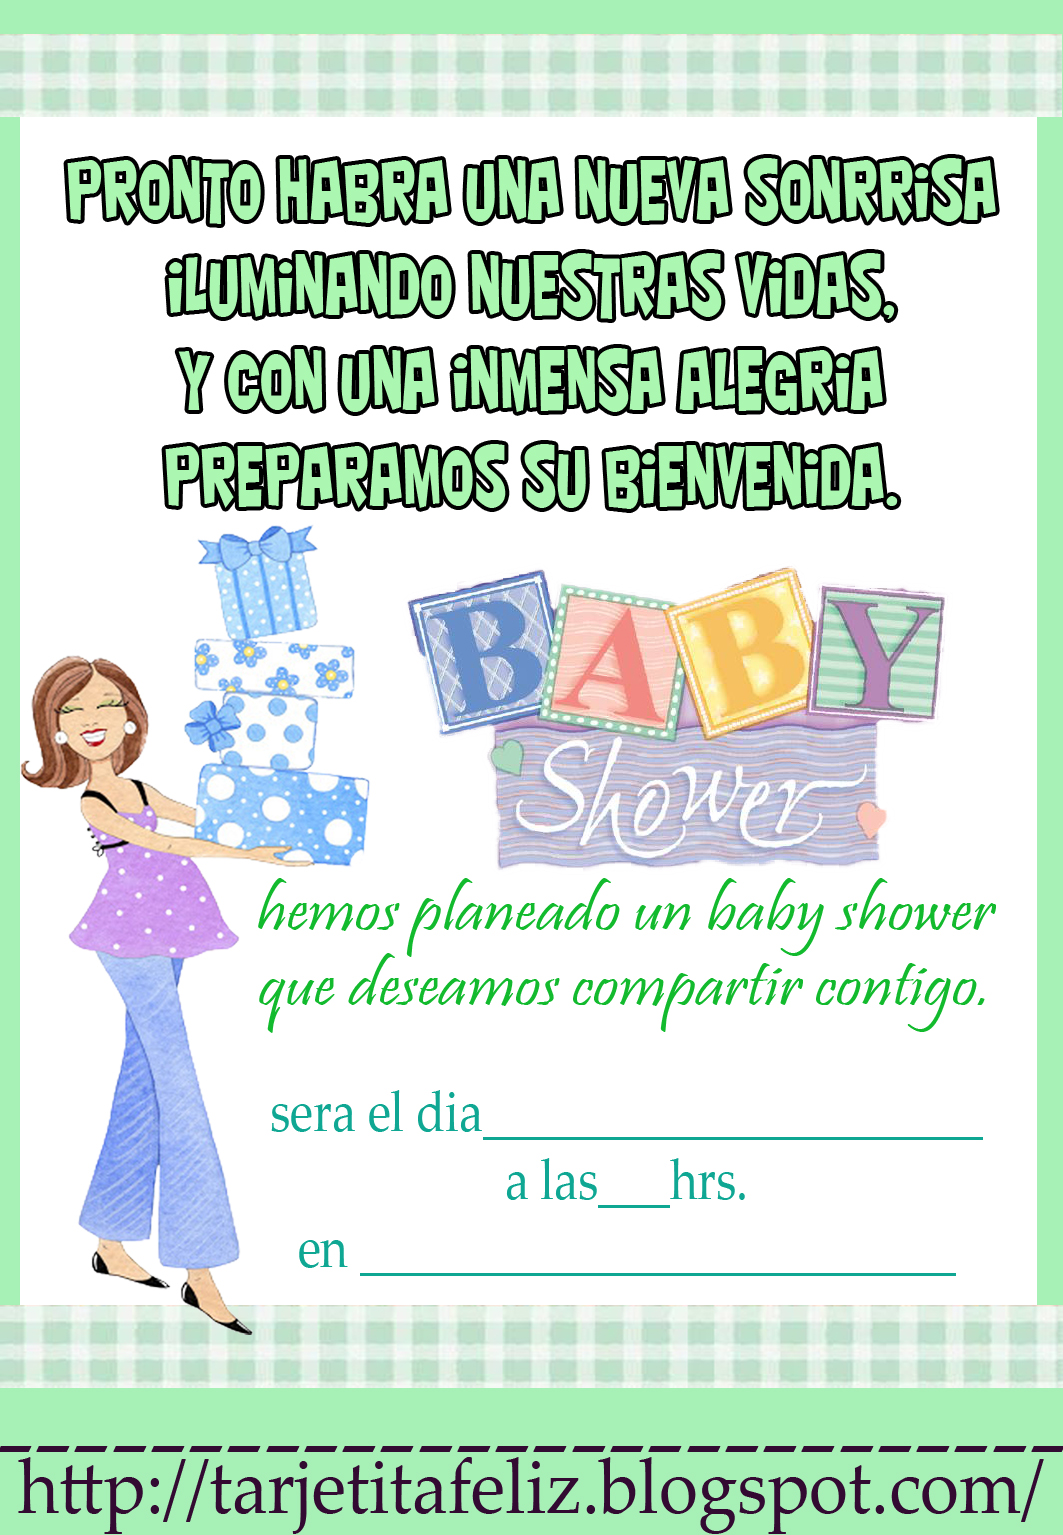 related to blog de mis frases frases para invitaciones de baby shower